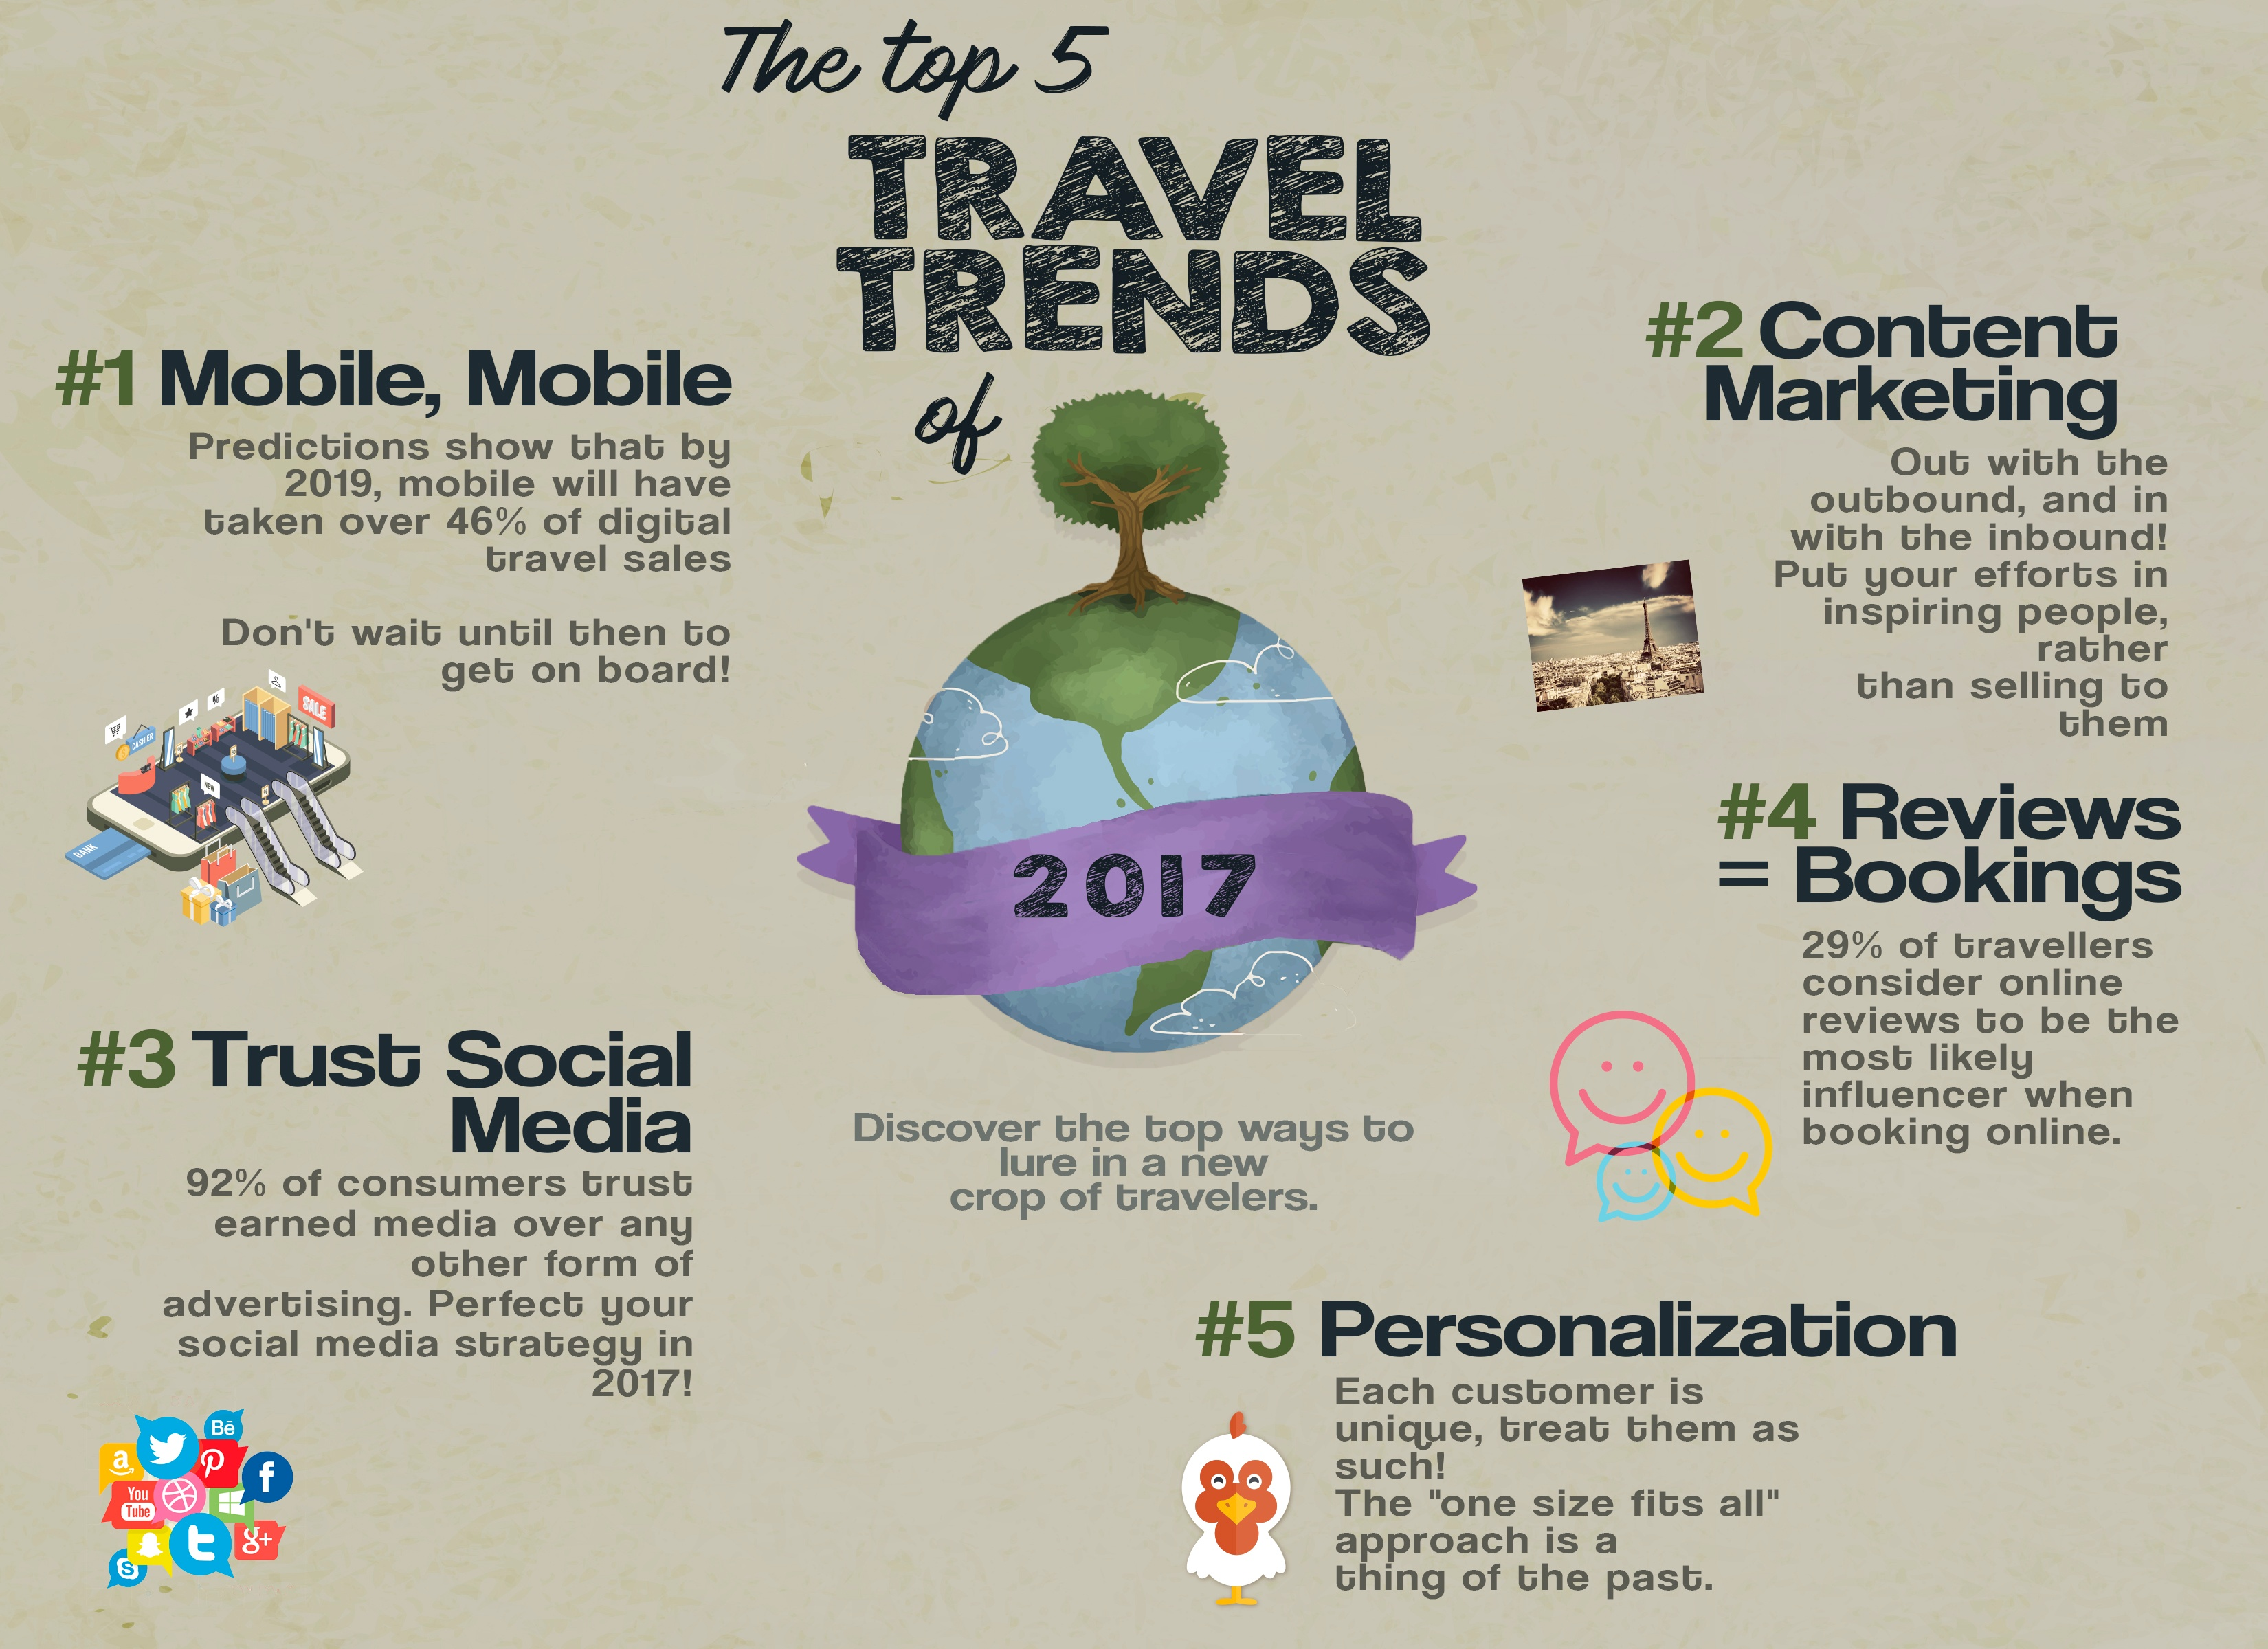 Traveltrendsof2015_BiggerFont.jpg